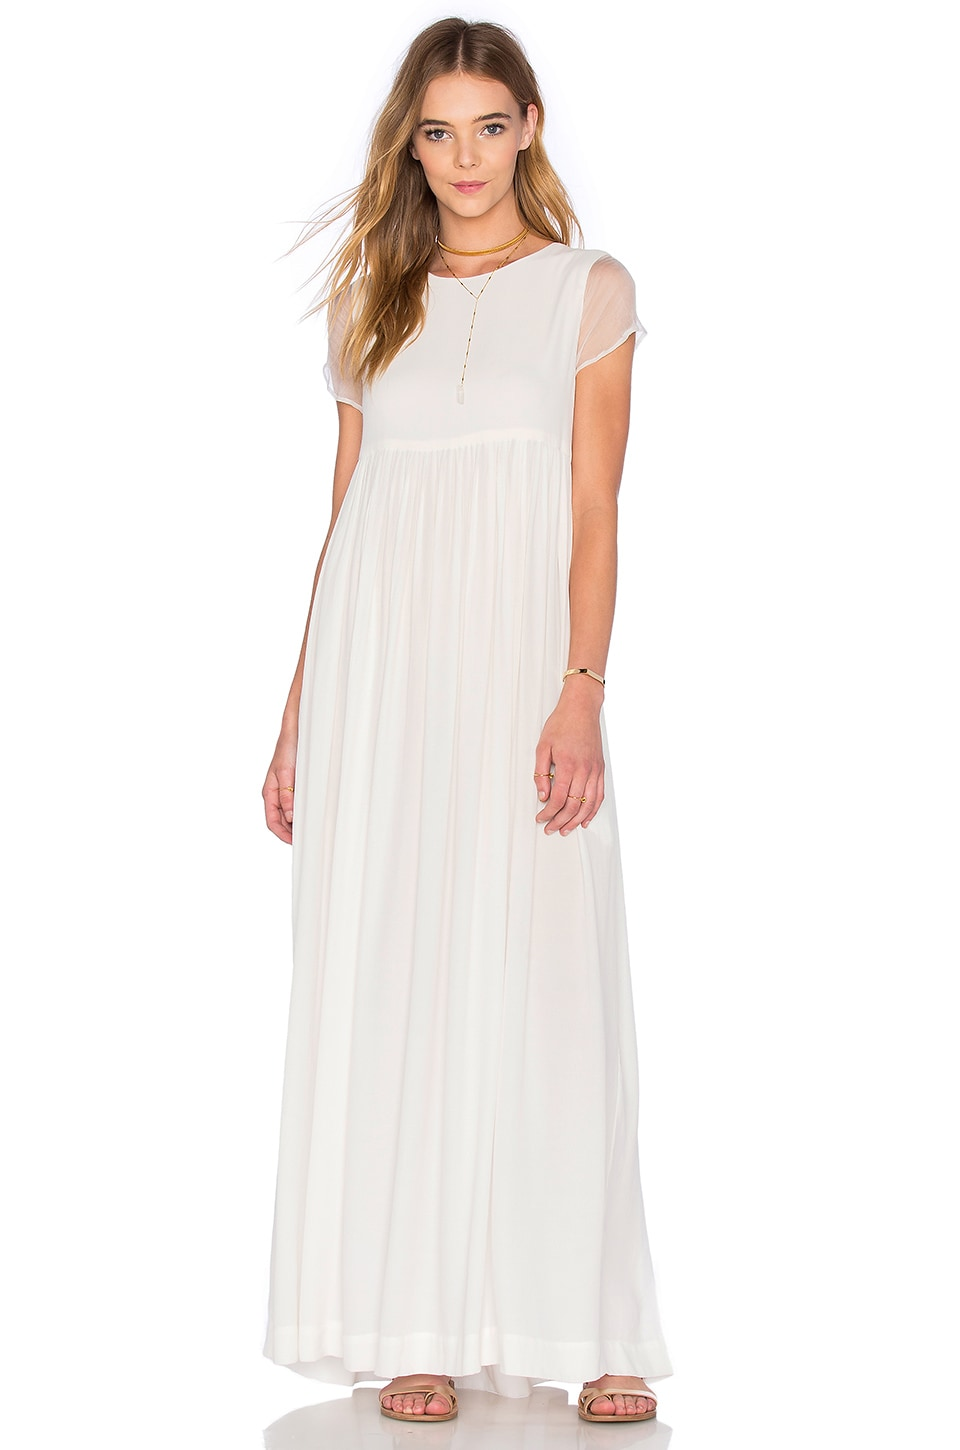 TROIS Paulina Dress in White